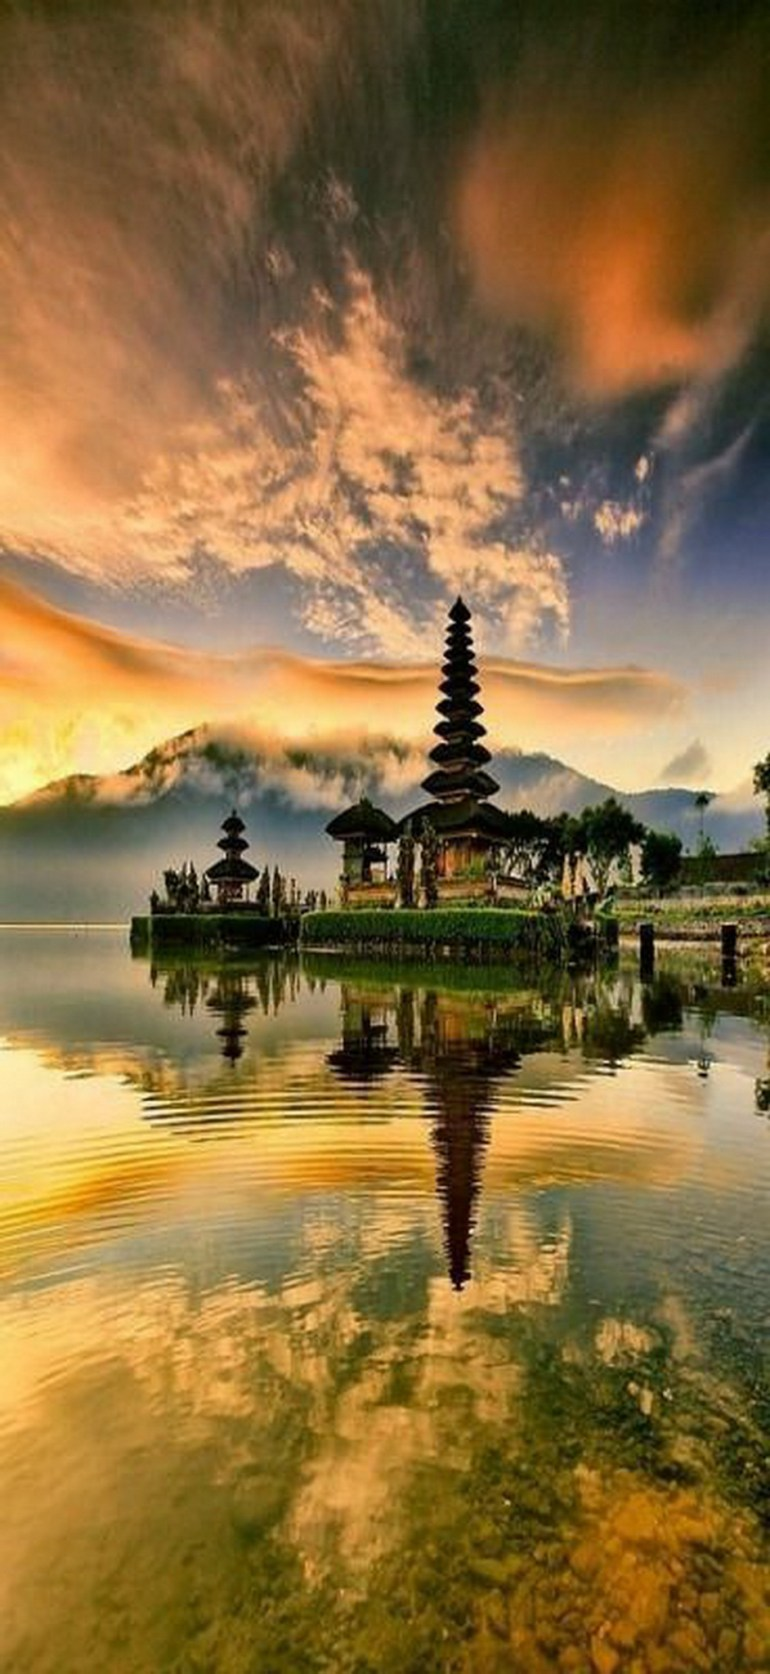 Tabanan Temple Tabanan Indonesia - Cloud, Landscape, Natural landscape, Nature, Outdoor structure, Pagoda, Reflection, Sunset, Water resources, Watercourse